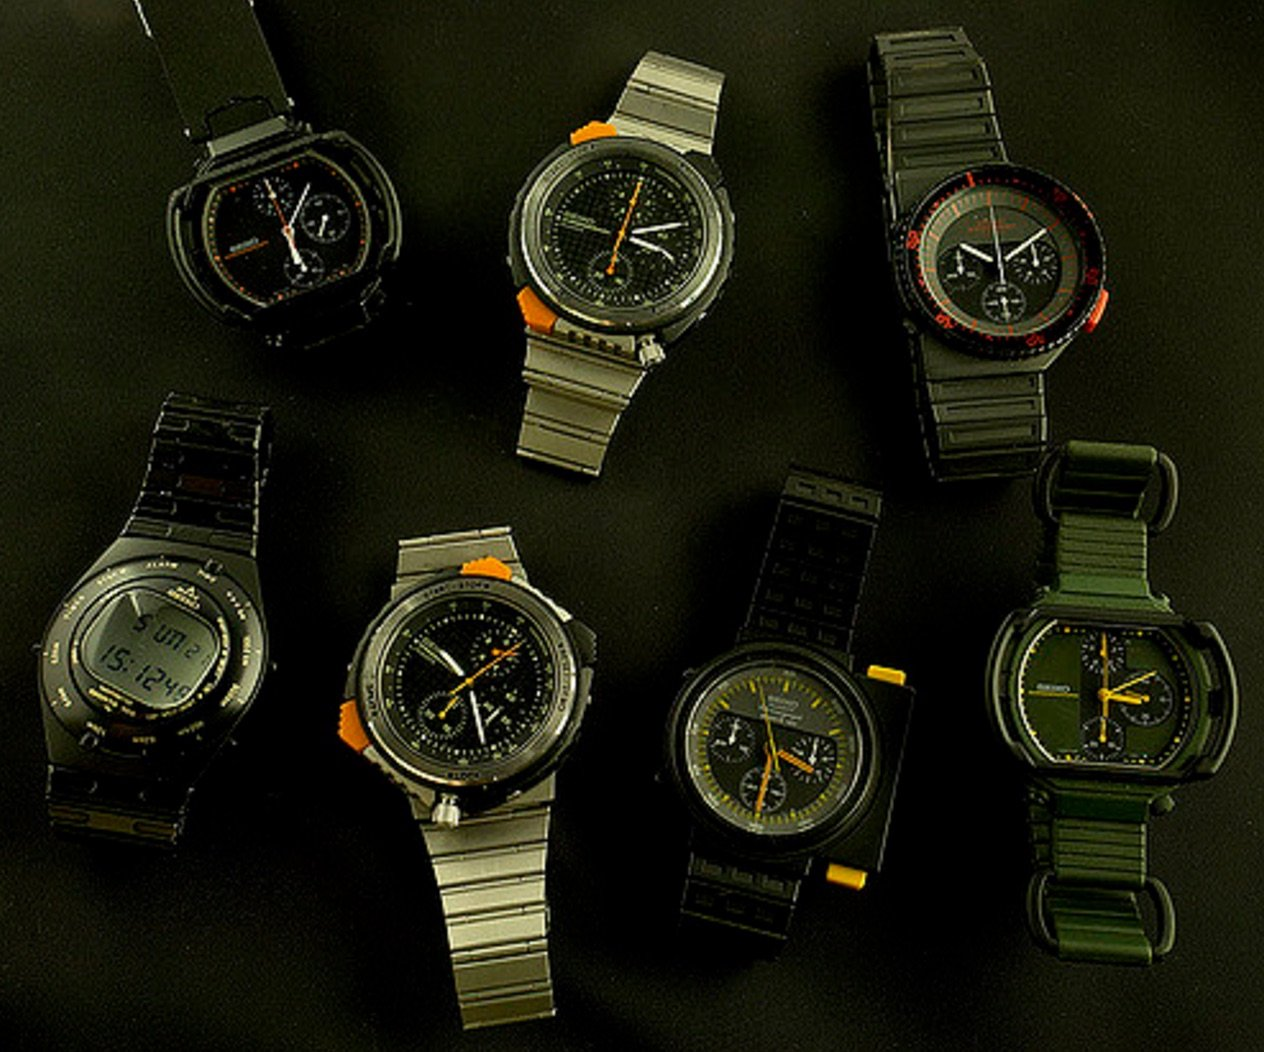 Seiko 7A28 watches